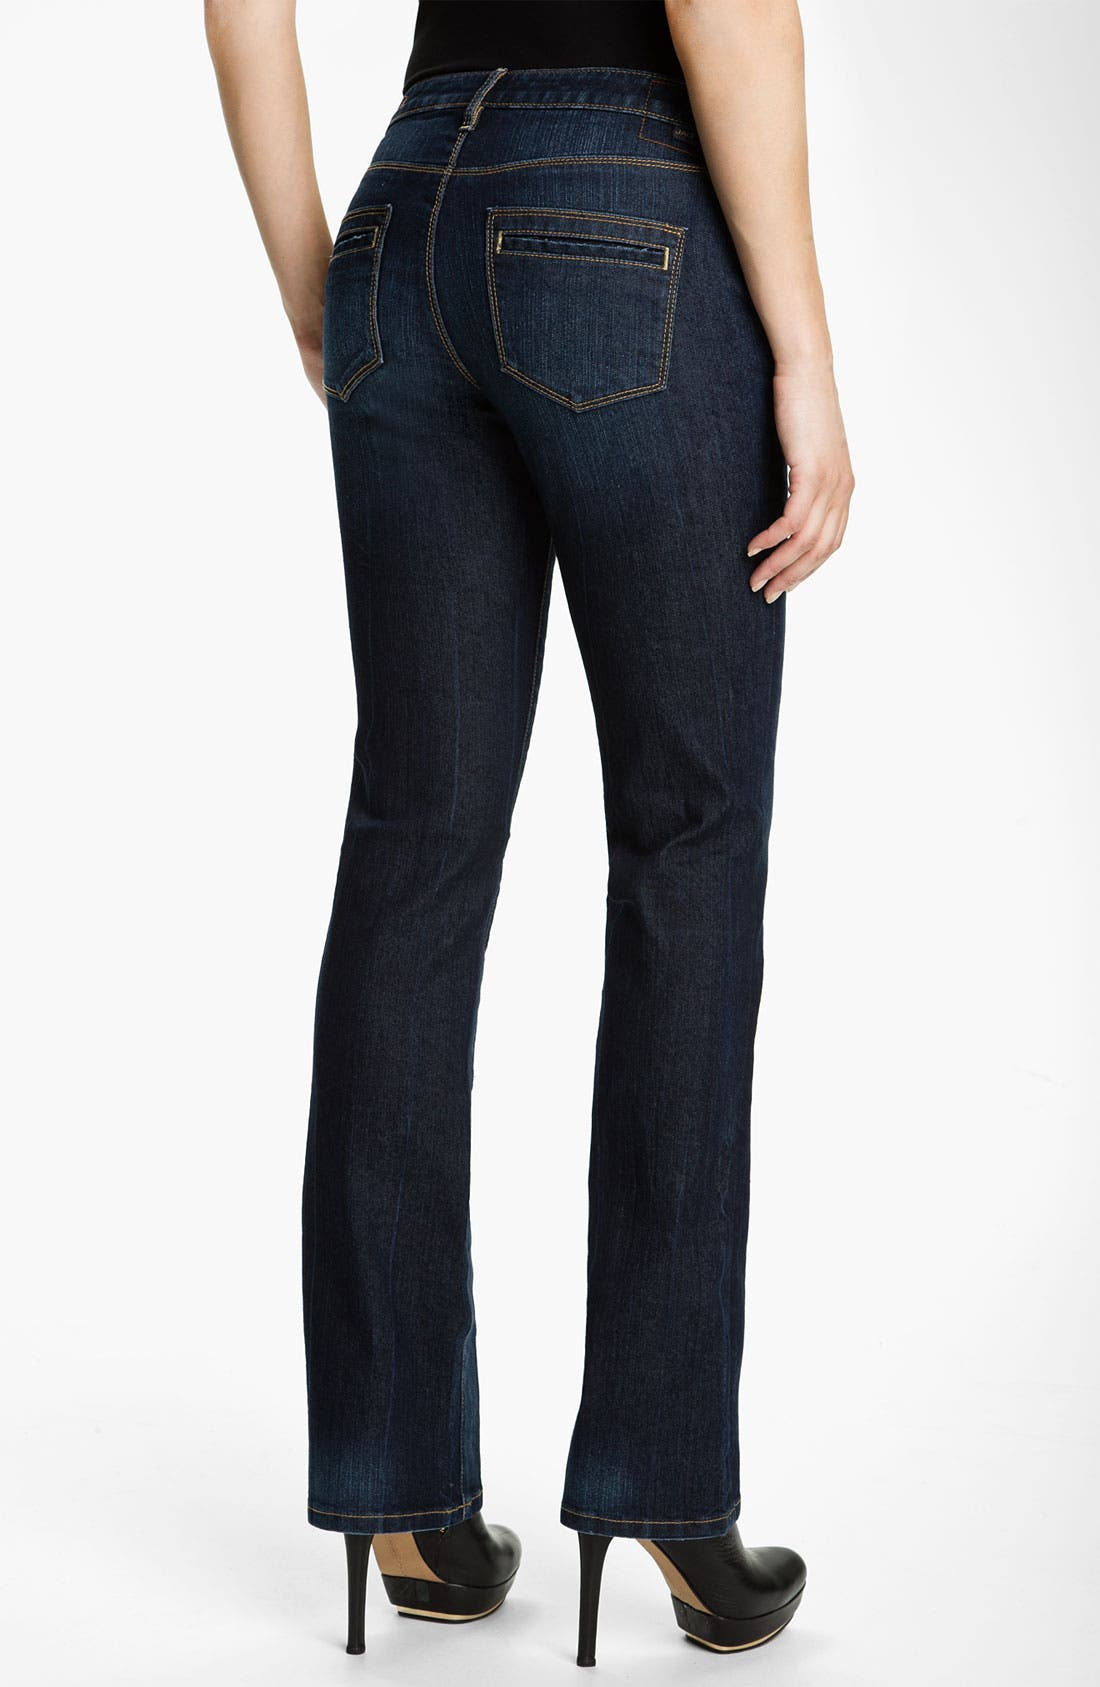 Alternate Image 2  - Jag Jeans 'Virginia' Bootcut Stretch Jeans (Roswell) (Petite)